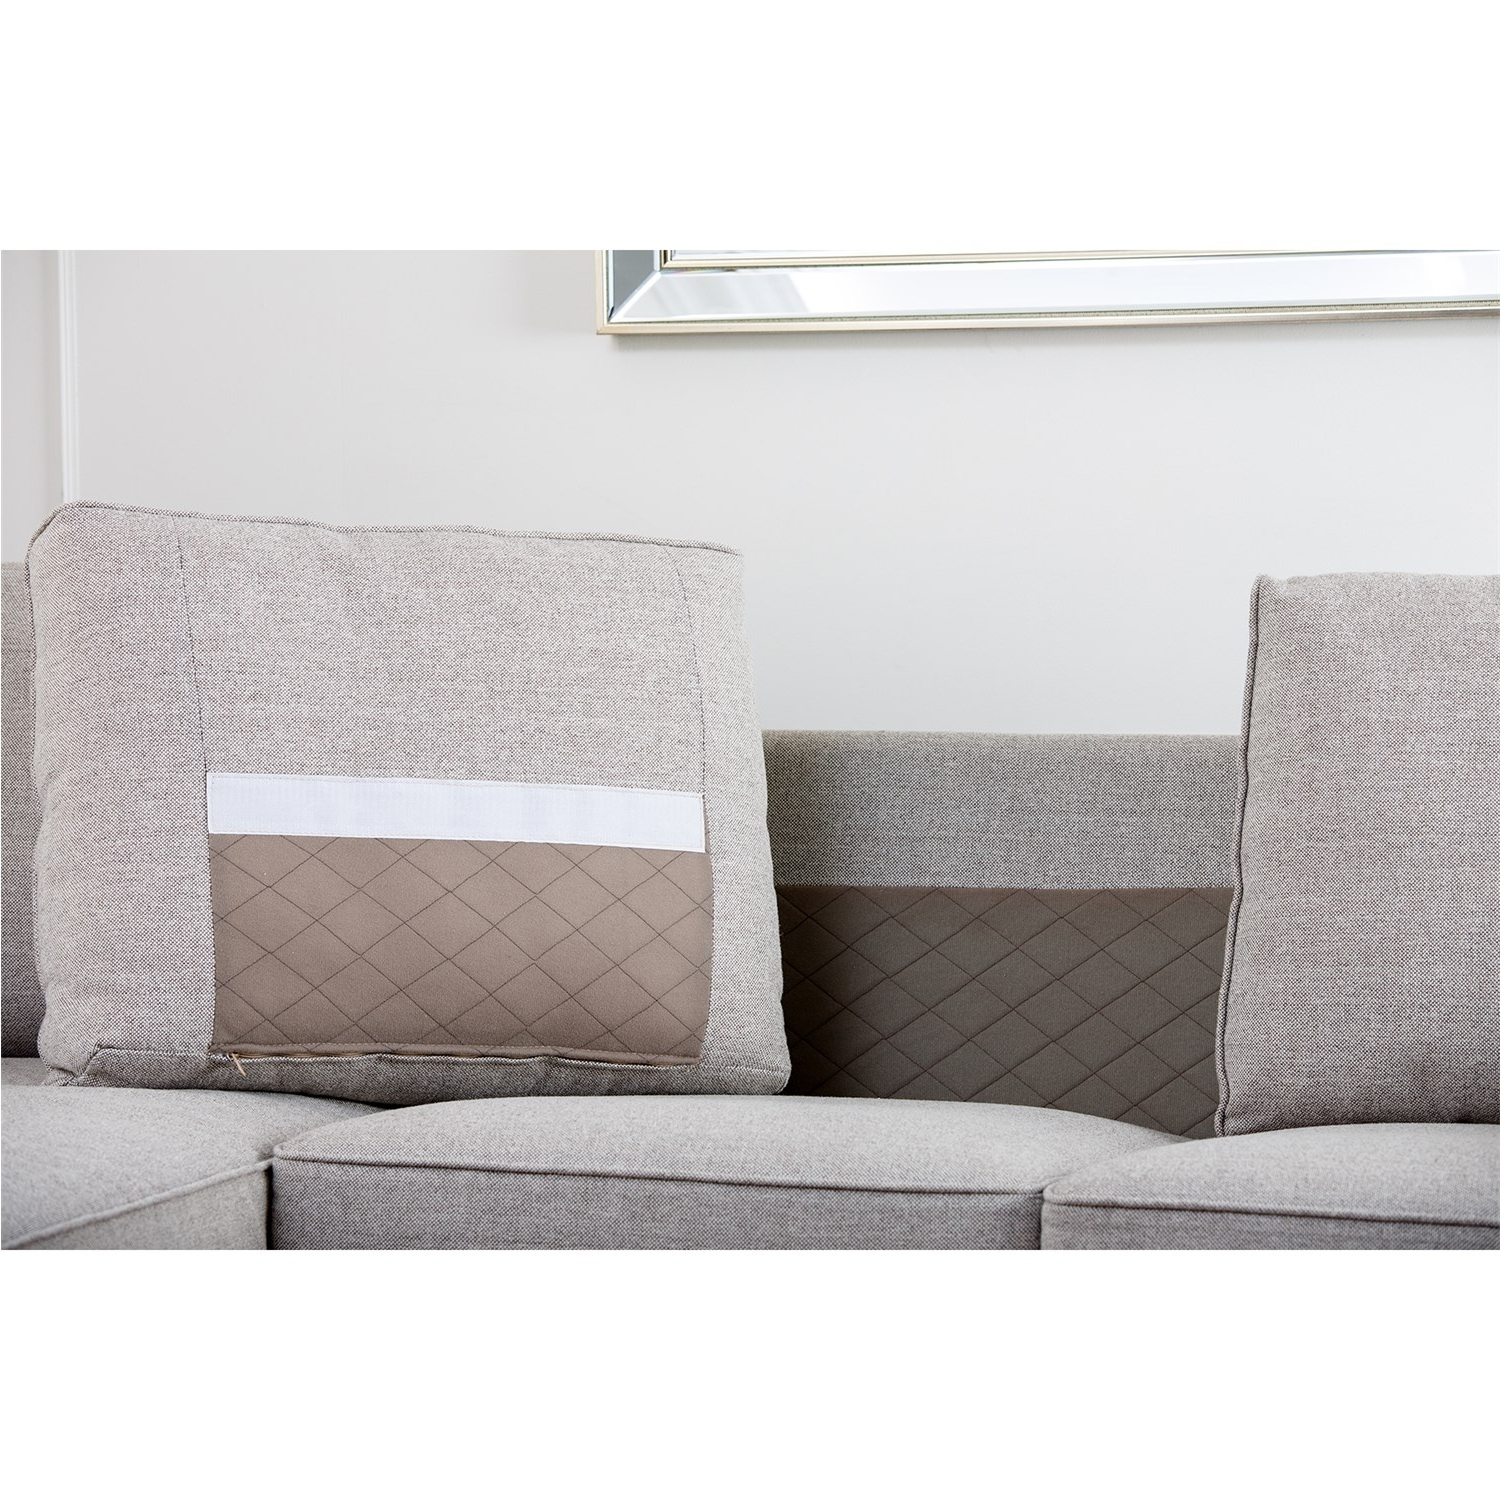 Widely Used Abbyson Living Rl 1321 Gry Regina Grey Fabric Sectional Sofa In Regina Sectional Sofas (View 14 of 15)